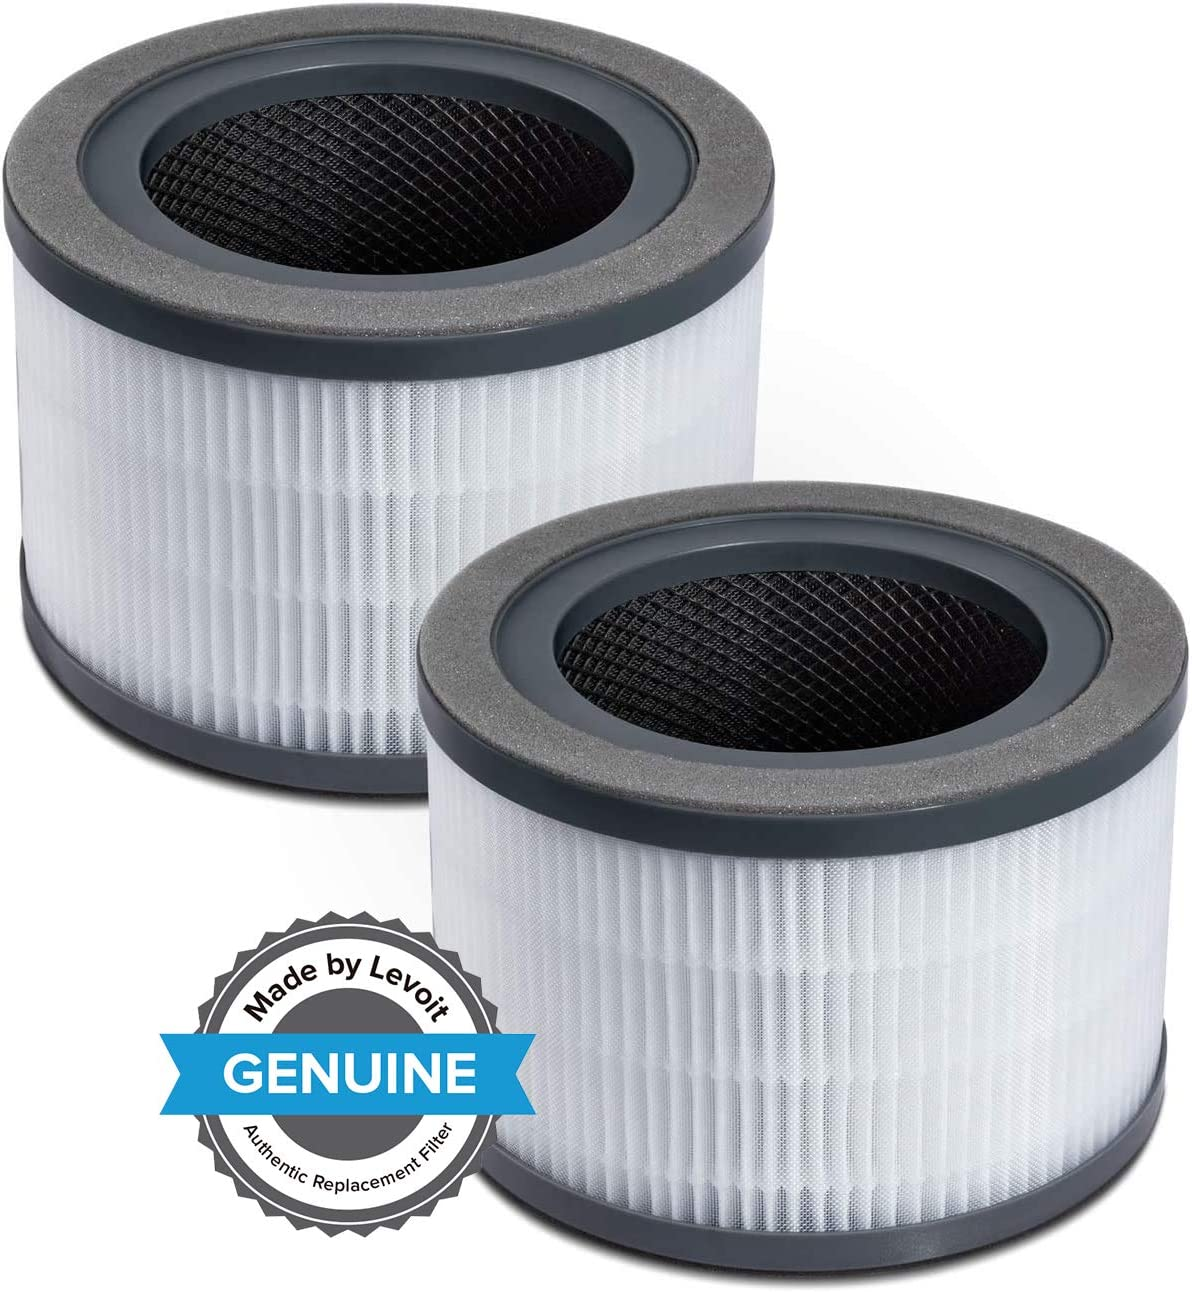 LEVOIT Vista 200 Air Purifier Replacement Filter, 3-in-1 Nylon Pre-Filter, True HEPA Filter, High-Efficiency Activated Carbon Filter, Vista 200-RF, 2Pack